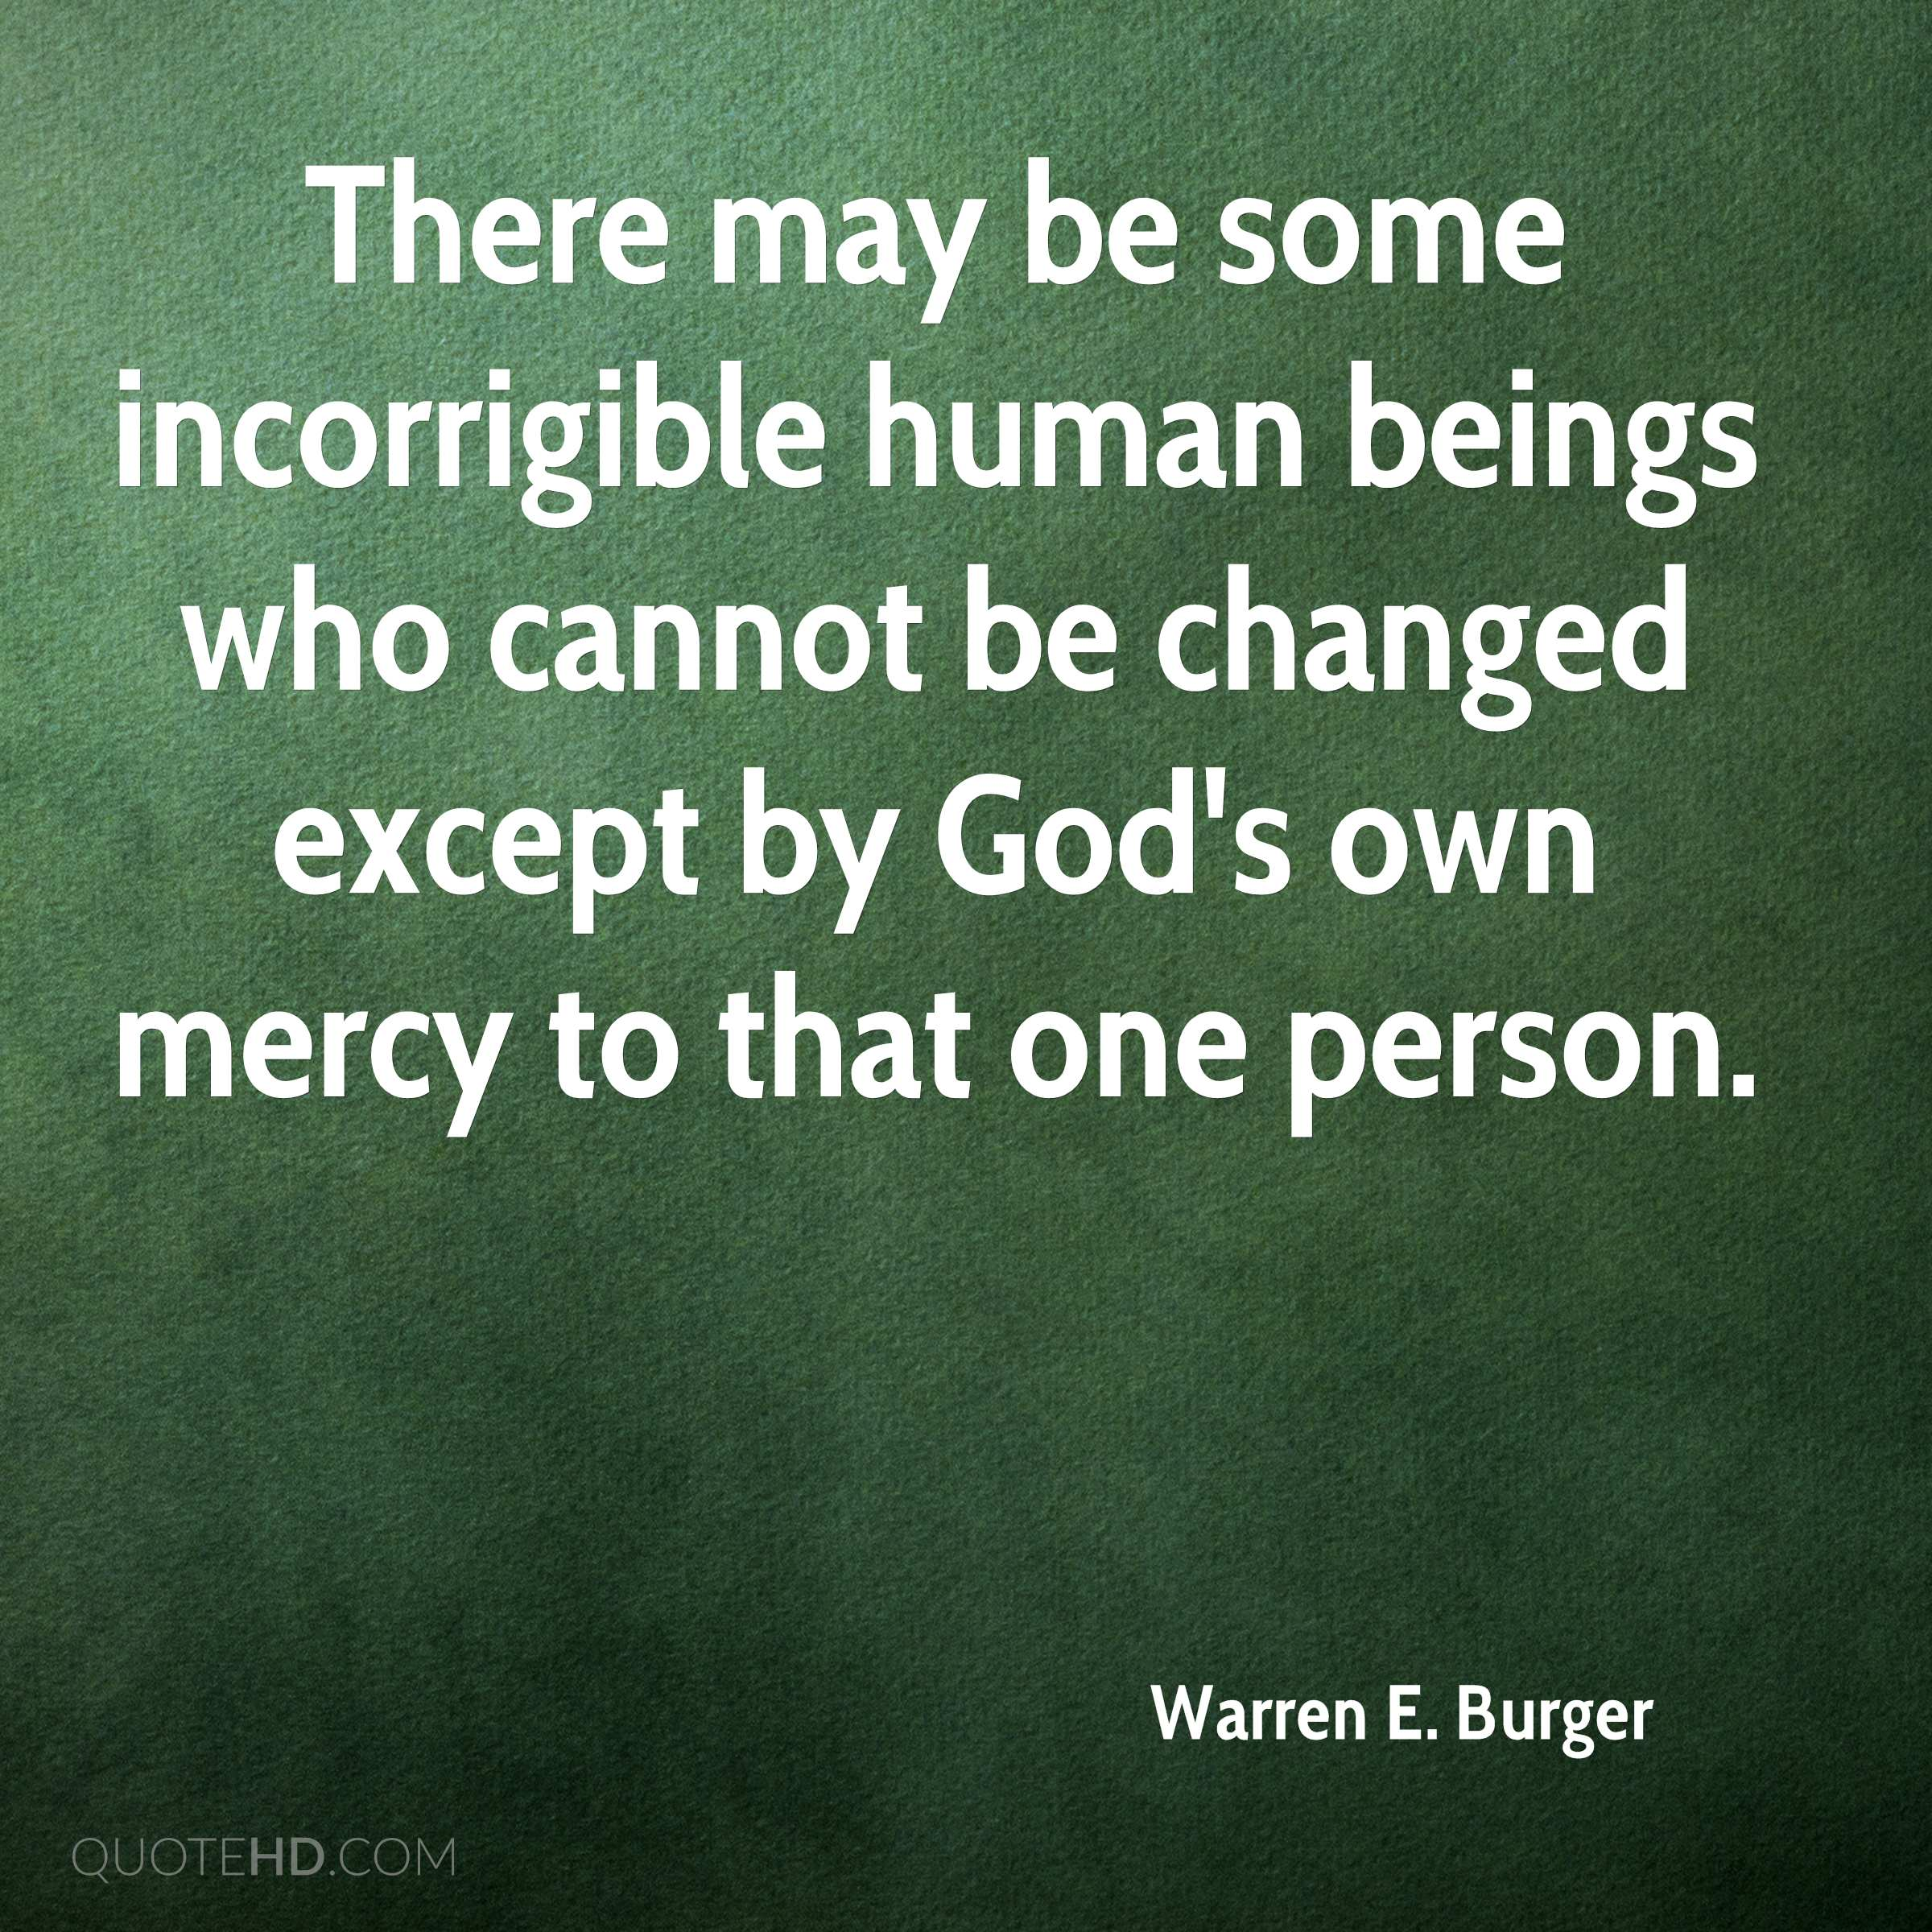 God's Mercy Quotes Warren Eburger Quotes  Quotehd